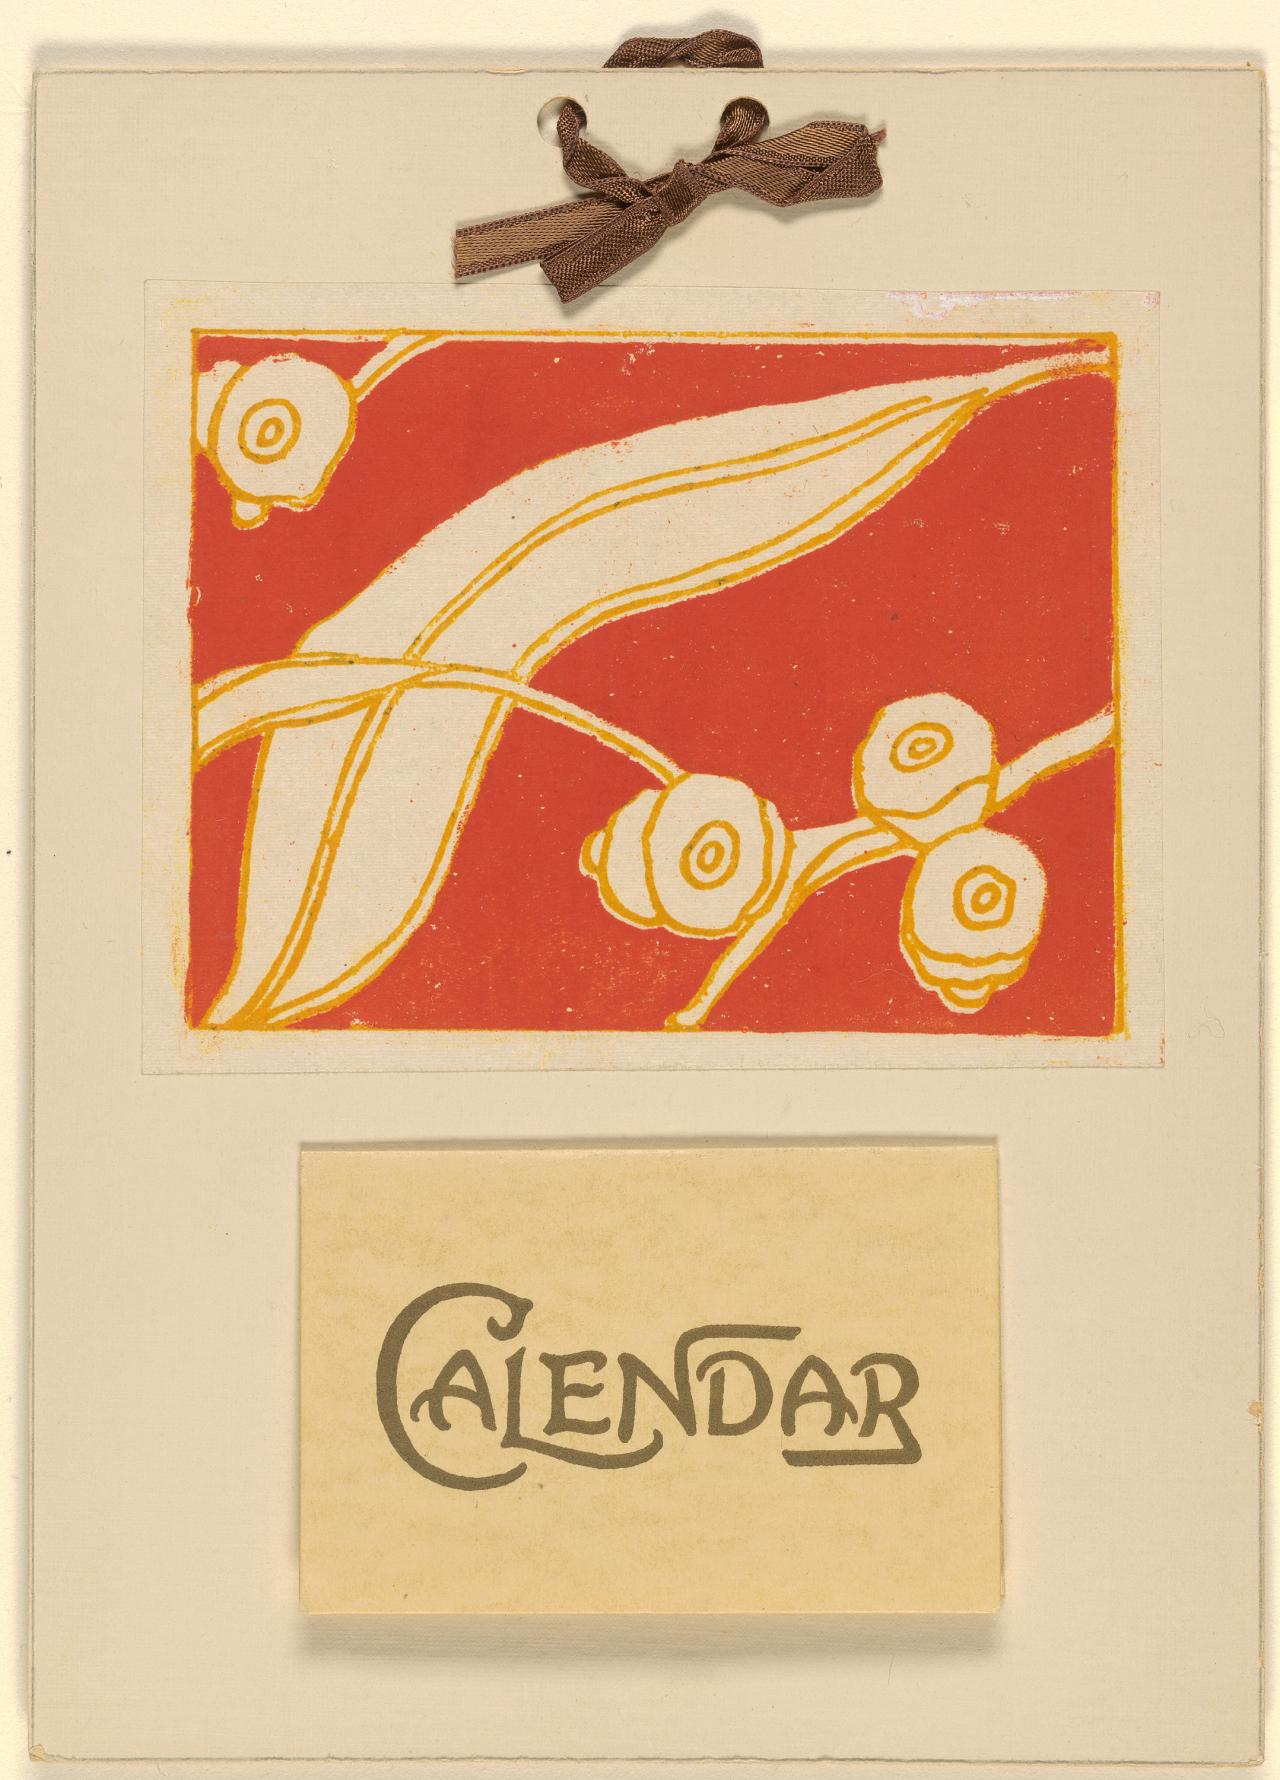 Eucalyptus leaves and gumnuts (Calendar 1942)